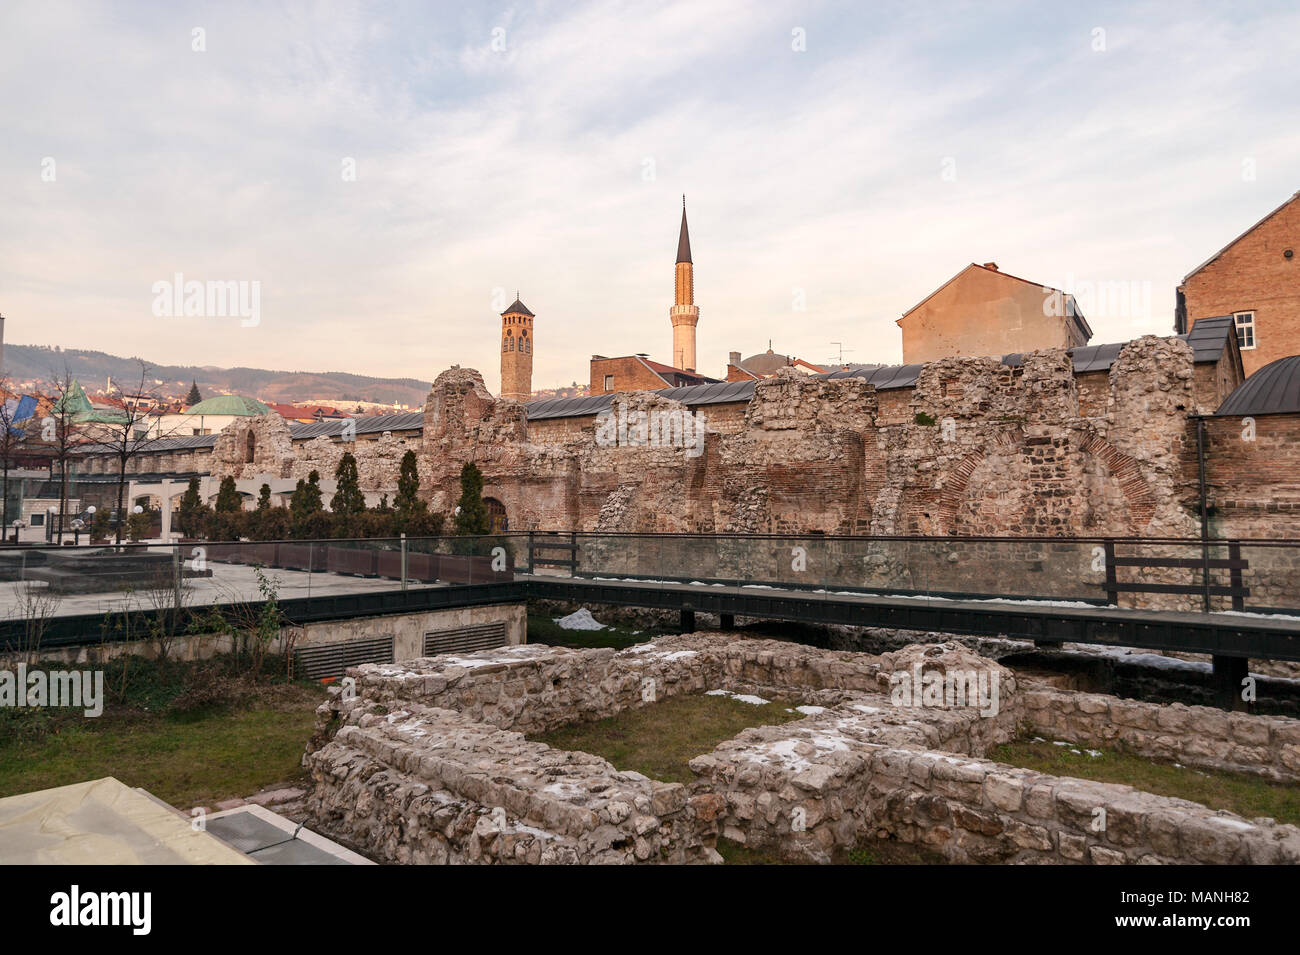 SARAJEVO, BOSNIA - JAN 25 2018: Historical Taslihan ruins with the old watch tower and minaret of Gazi Husrev mosque at the background. Ruins are a next to Sarajevo Europe Hotel. - Stock Image